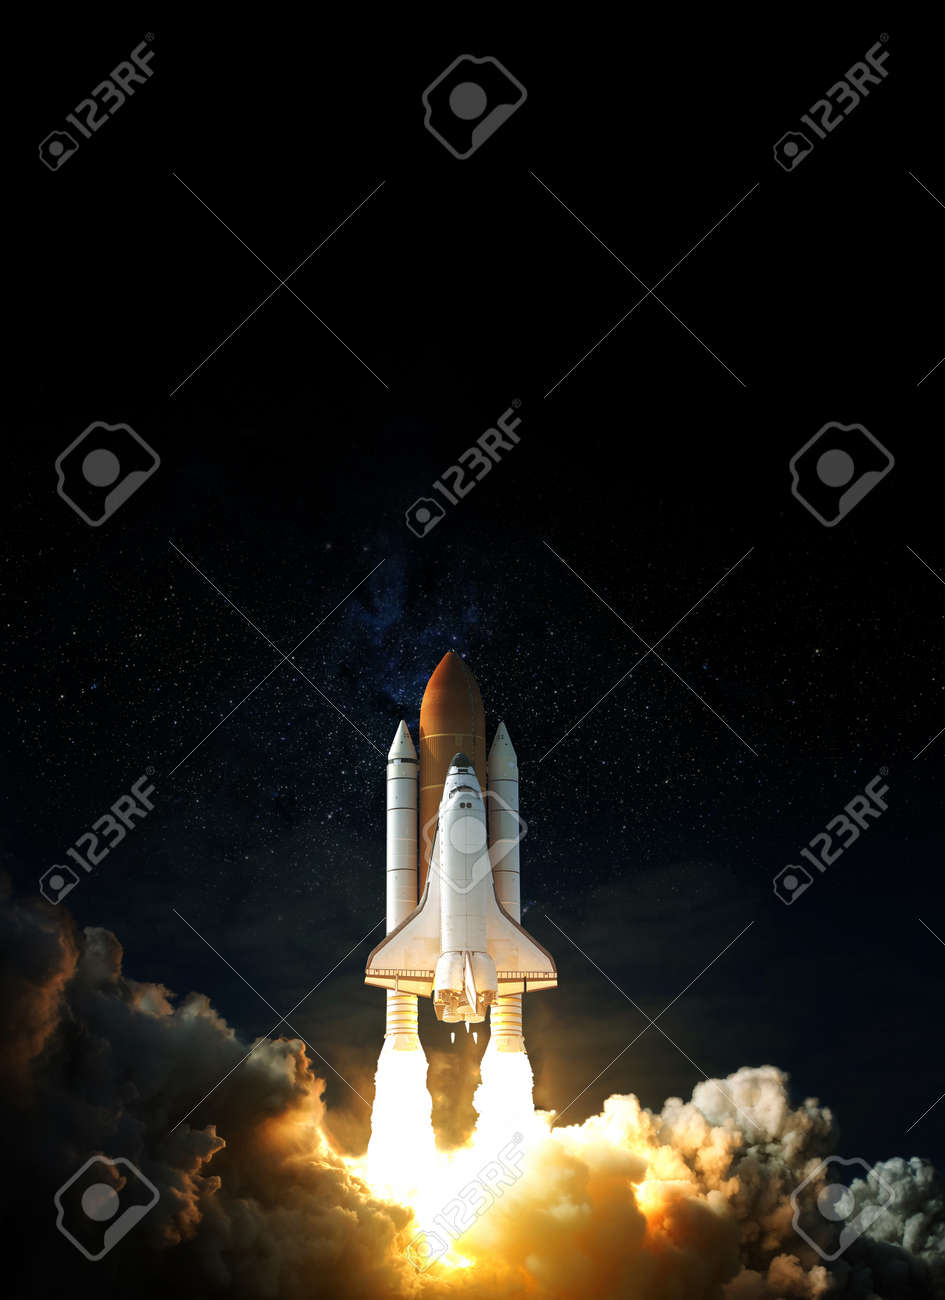 Space Shuttle takes off into space. Elements of this image. - 168822247